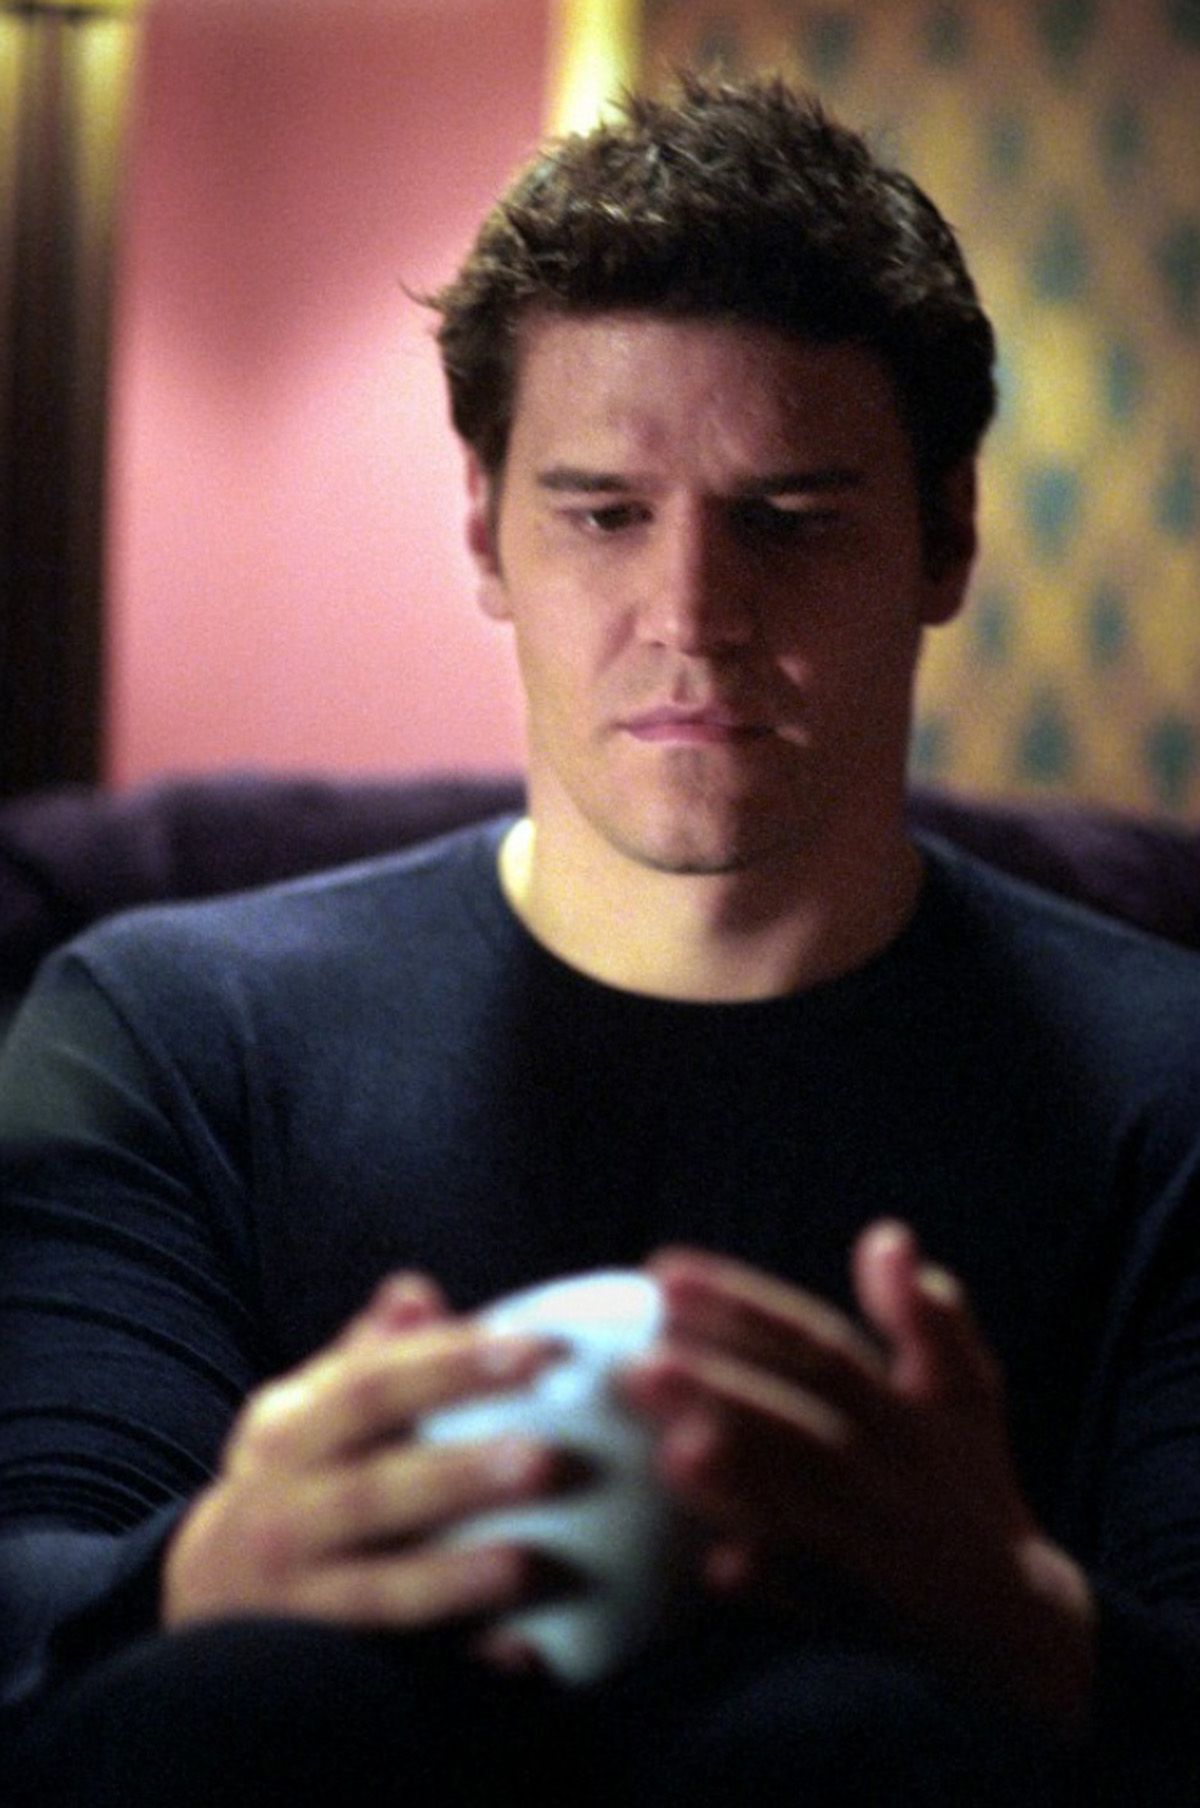 David Bauer (actor) Wallpapers Angel Gallery David Boreanaz Photos DVDbash